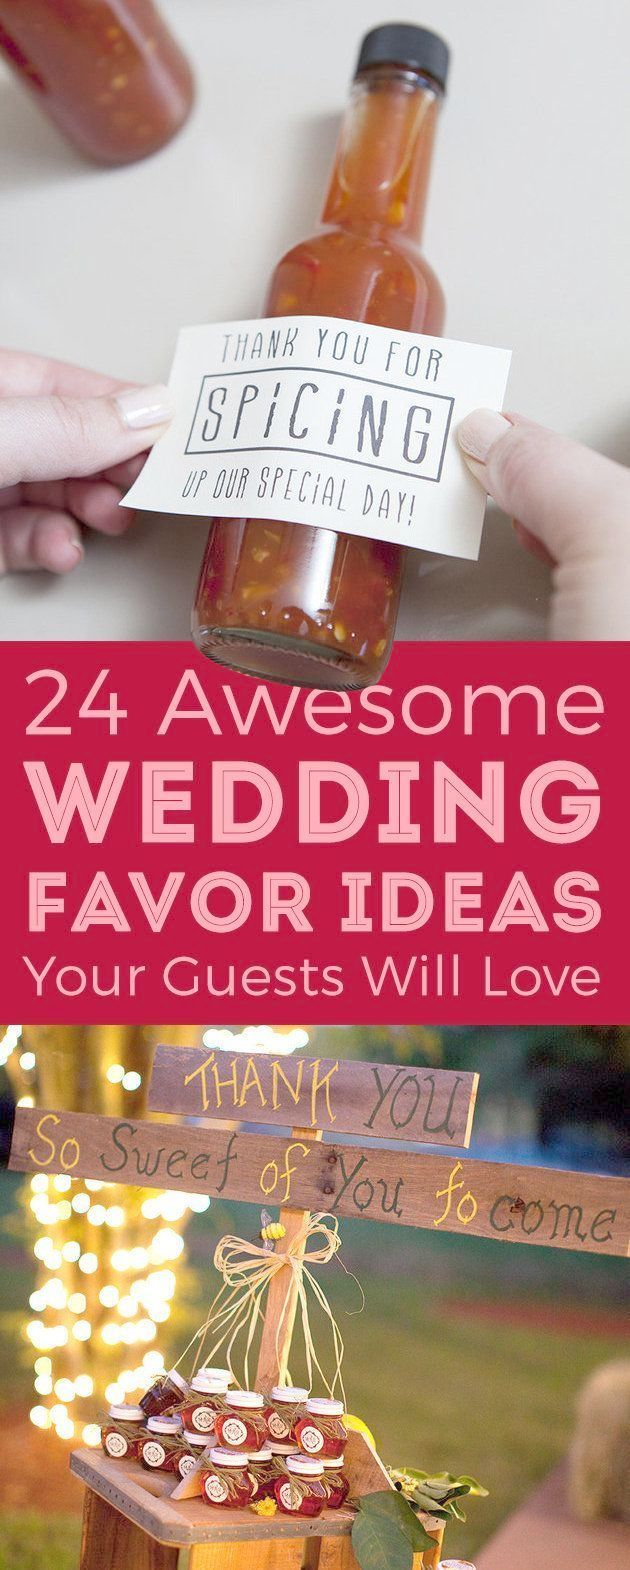 Easy Wedding Favors Ideas Wedding Favors Prices | Wedding ideas ...